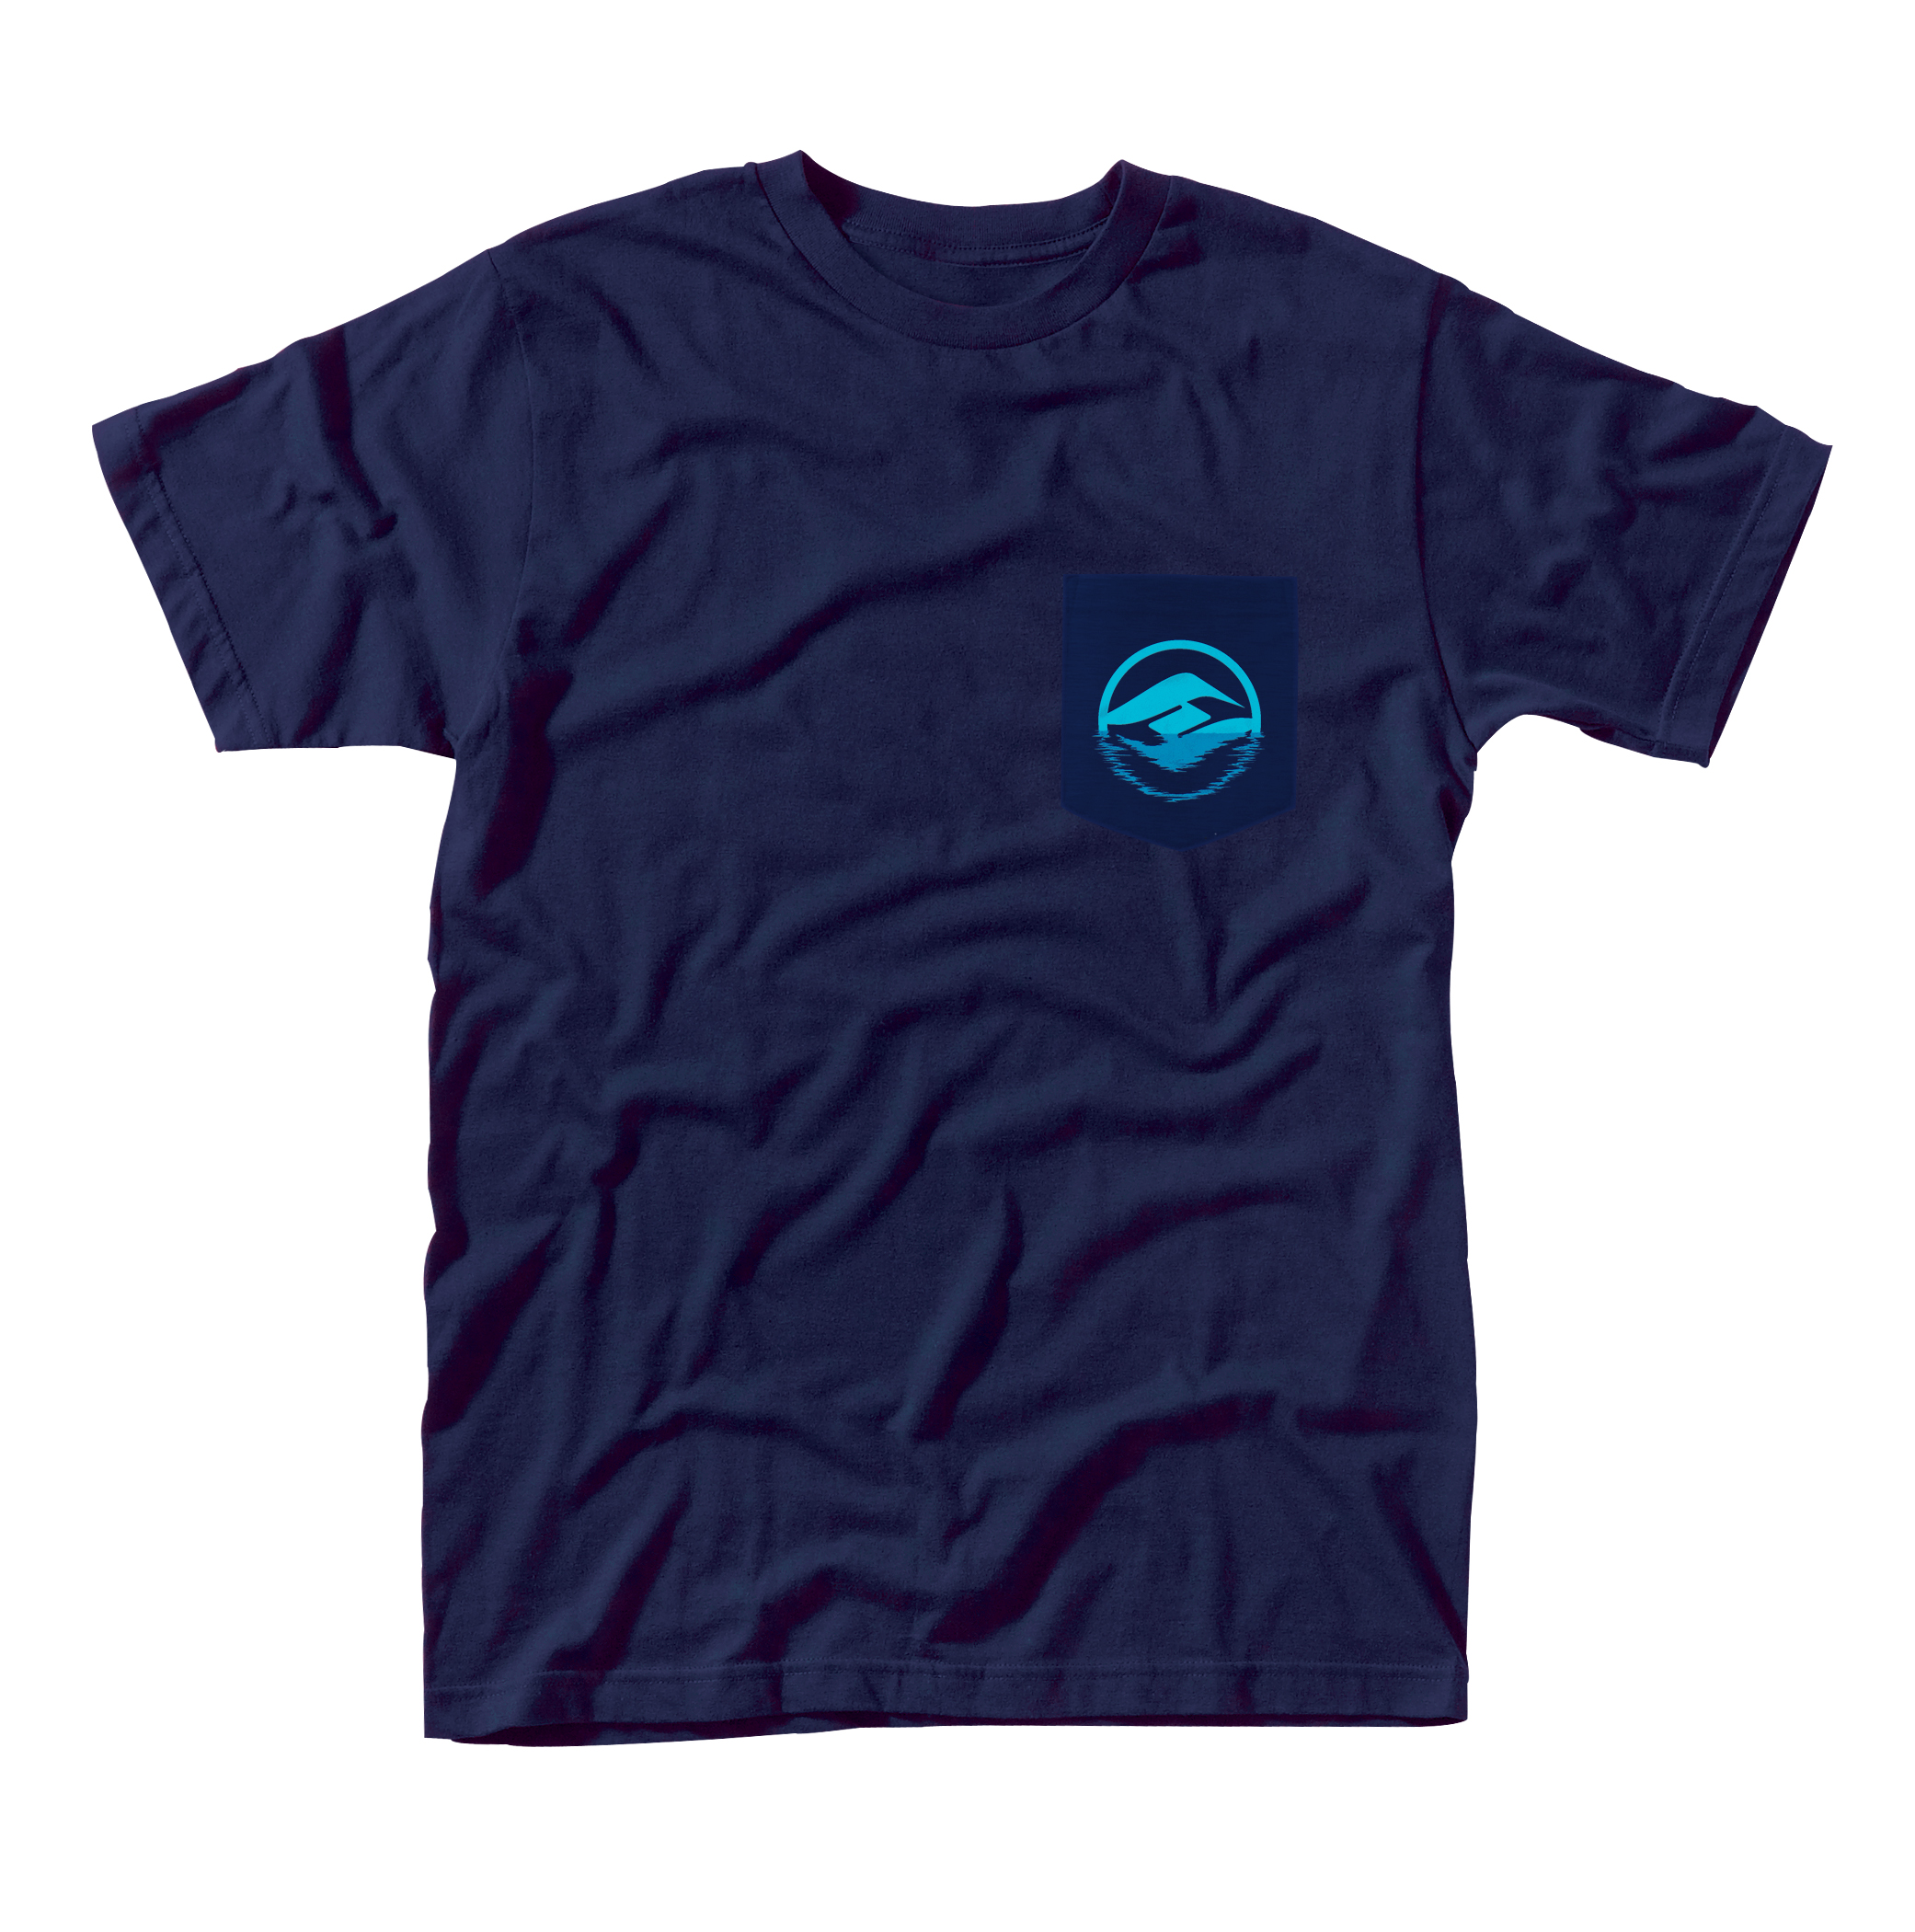 SUBSIDE T-SHIRT - NAVY HYPERLITE 2017